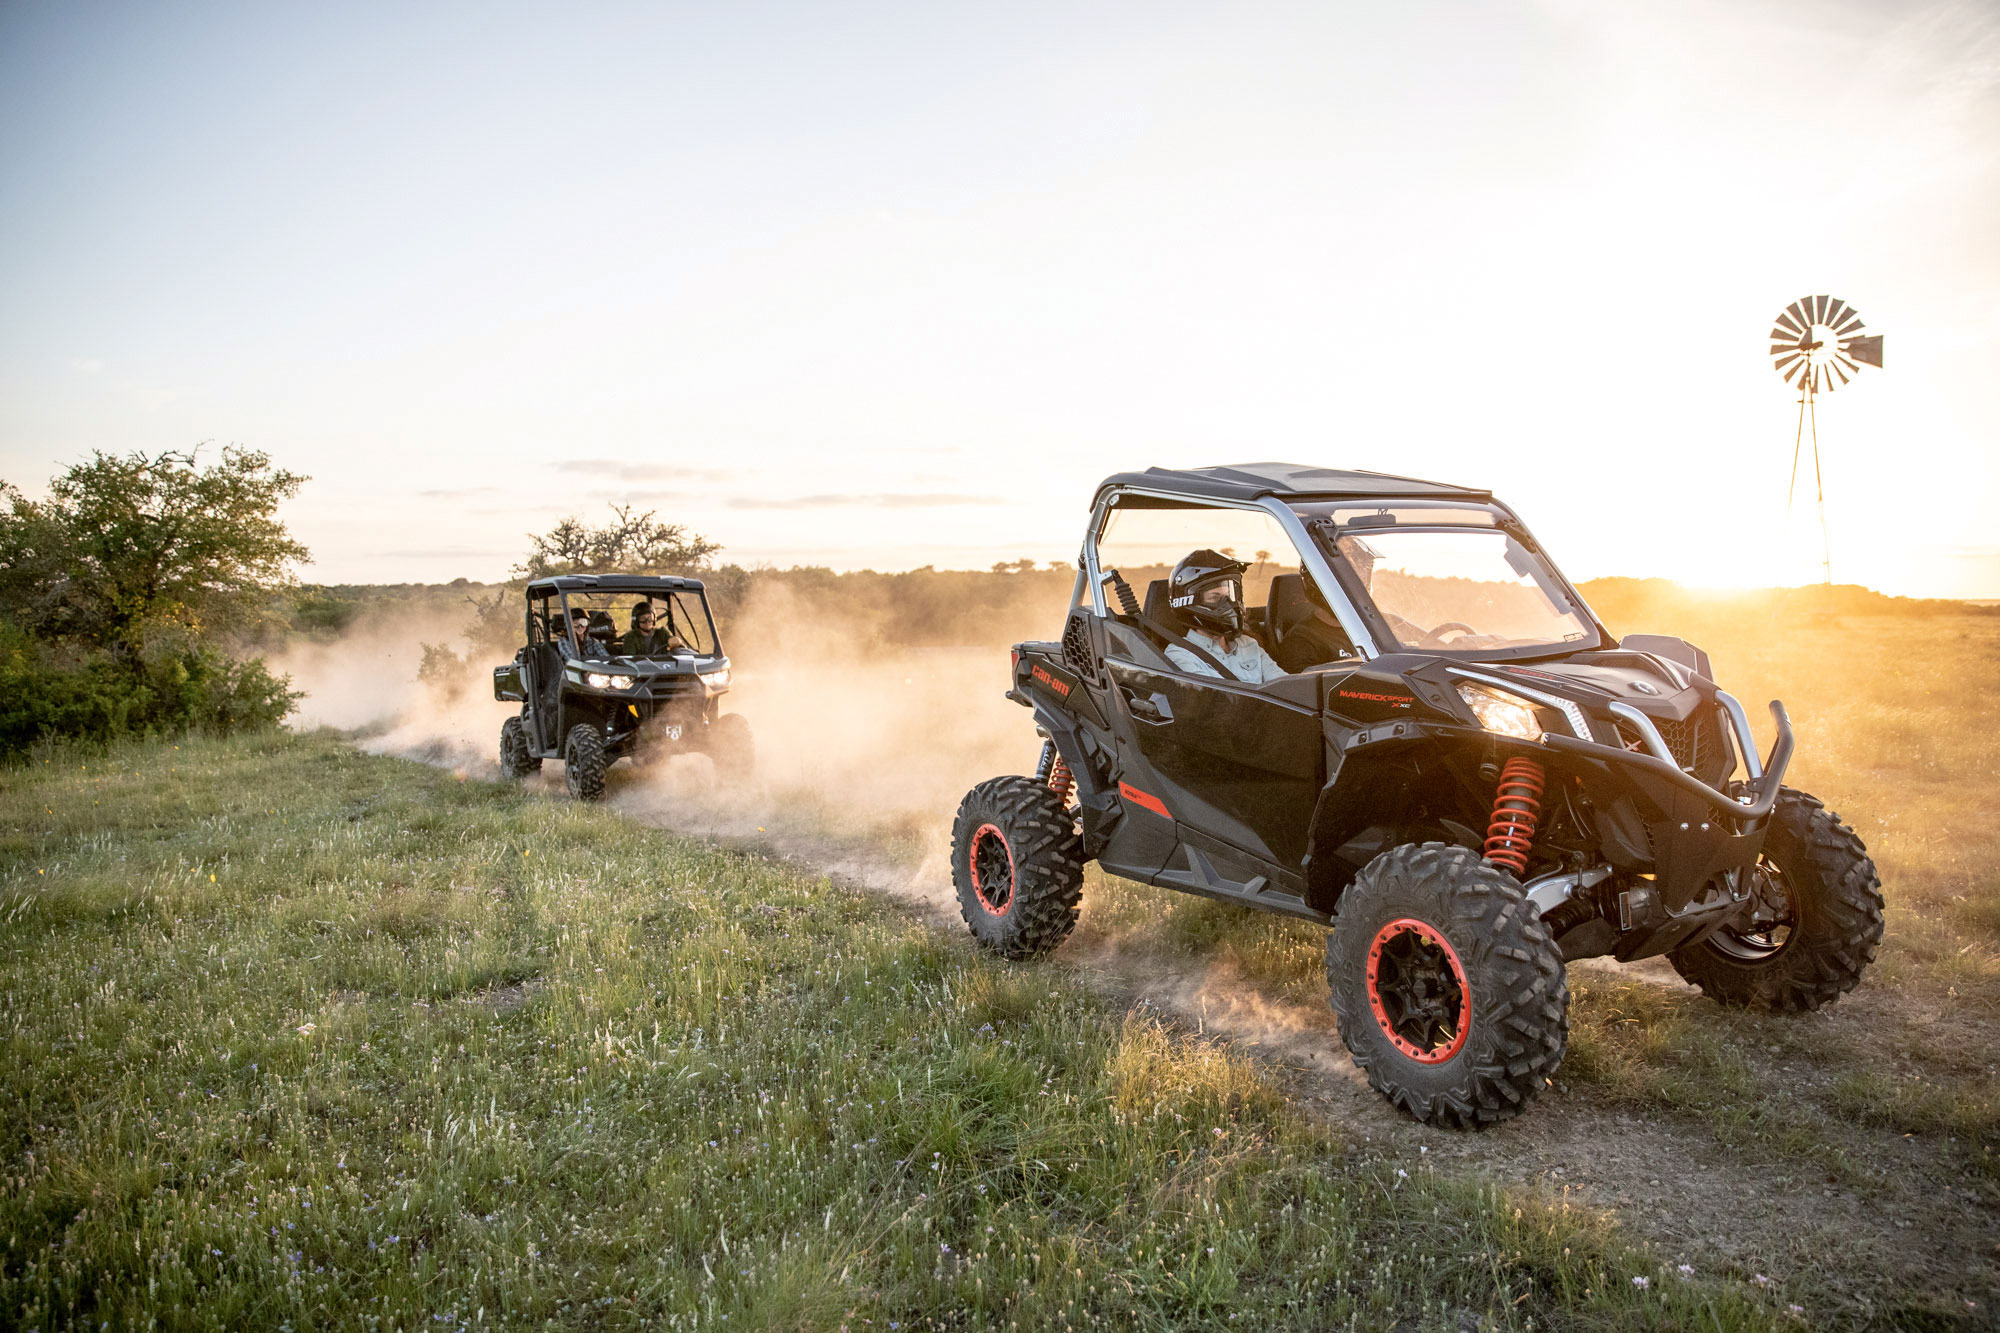 The Complete Side-by-Side (SxS) & UTV Buyer's Guide